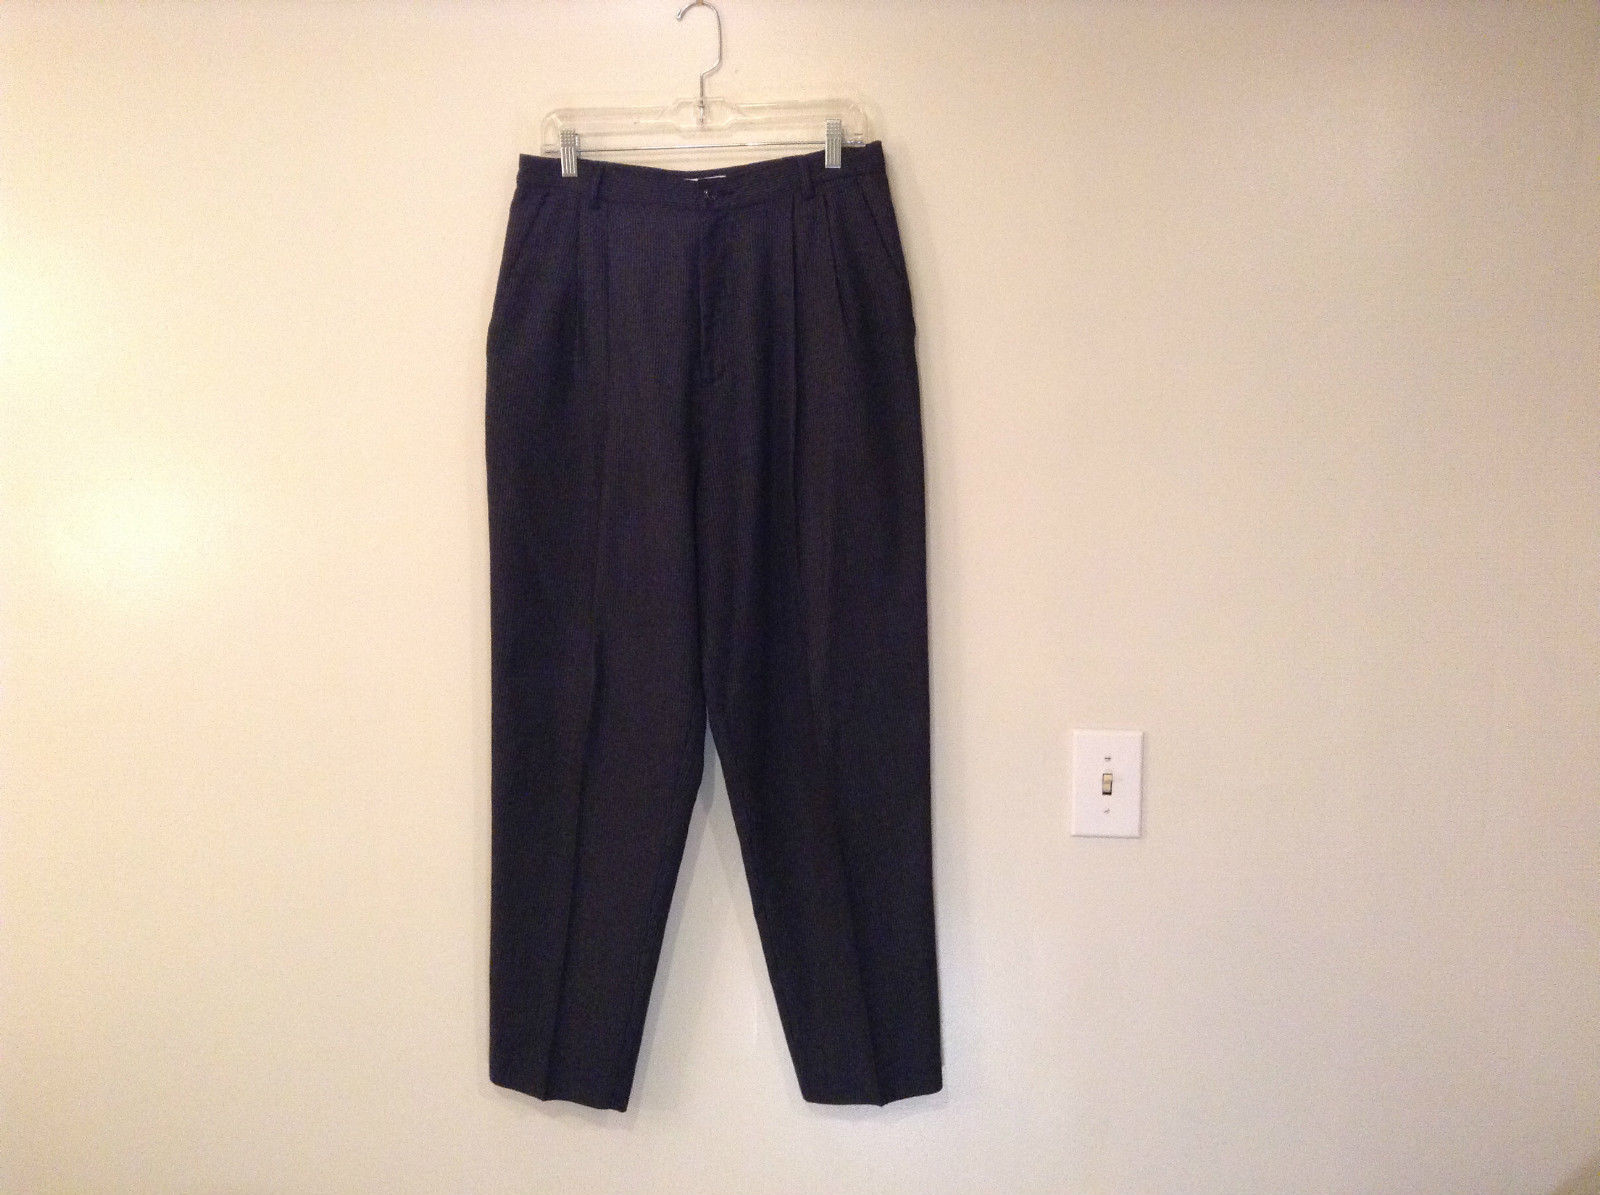 Size 16 Dressbarn Plaid Pattern Navy Blue Gray Strips Dress Pants Pleated Front